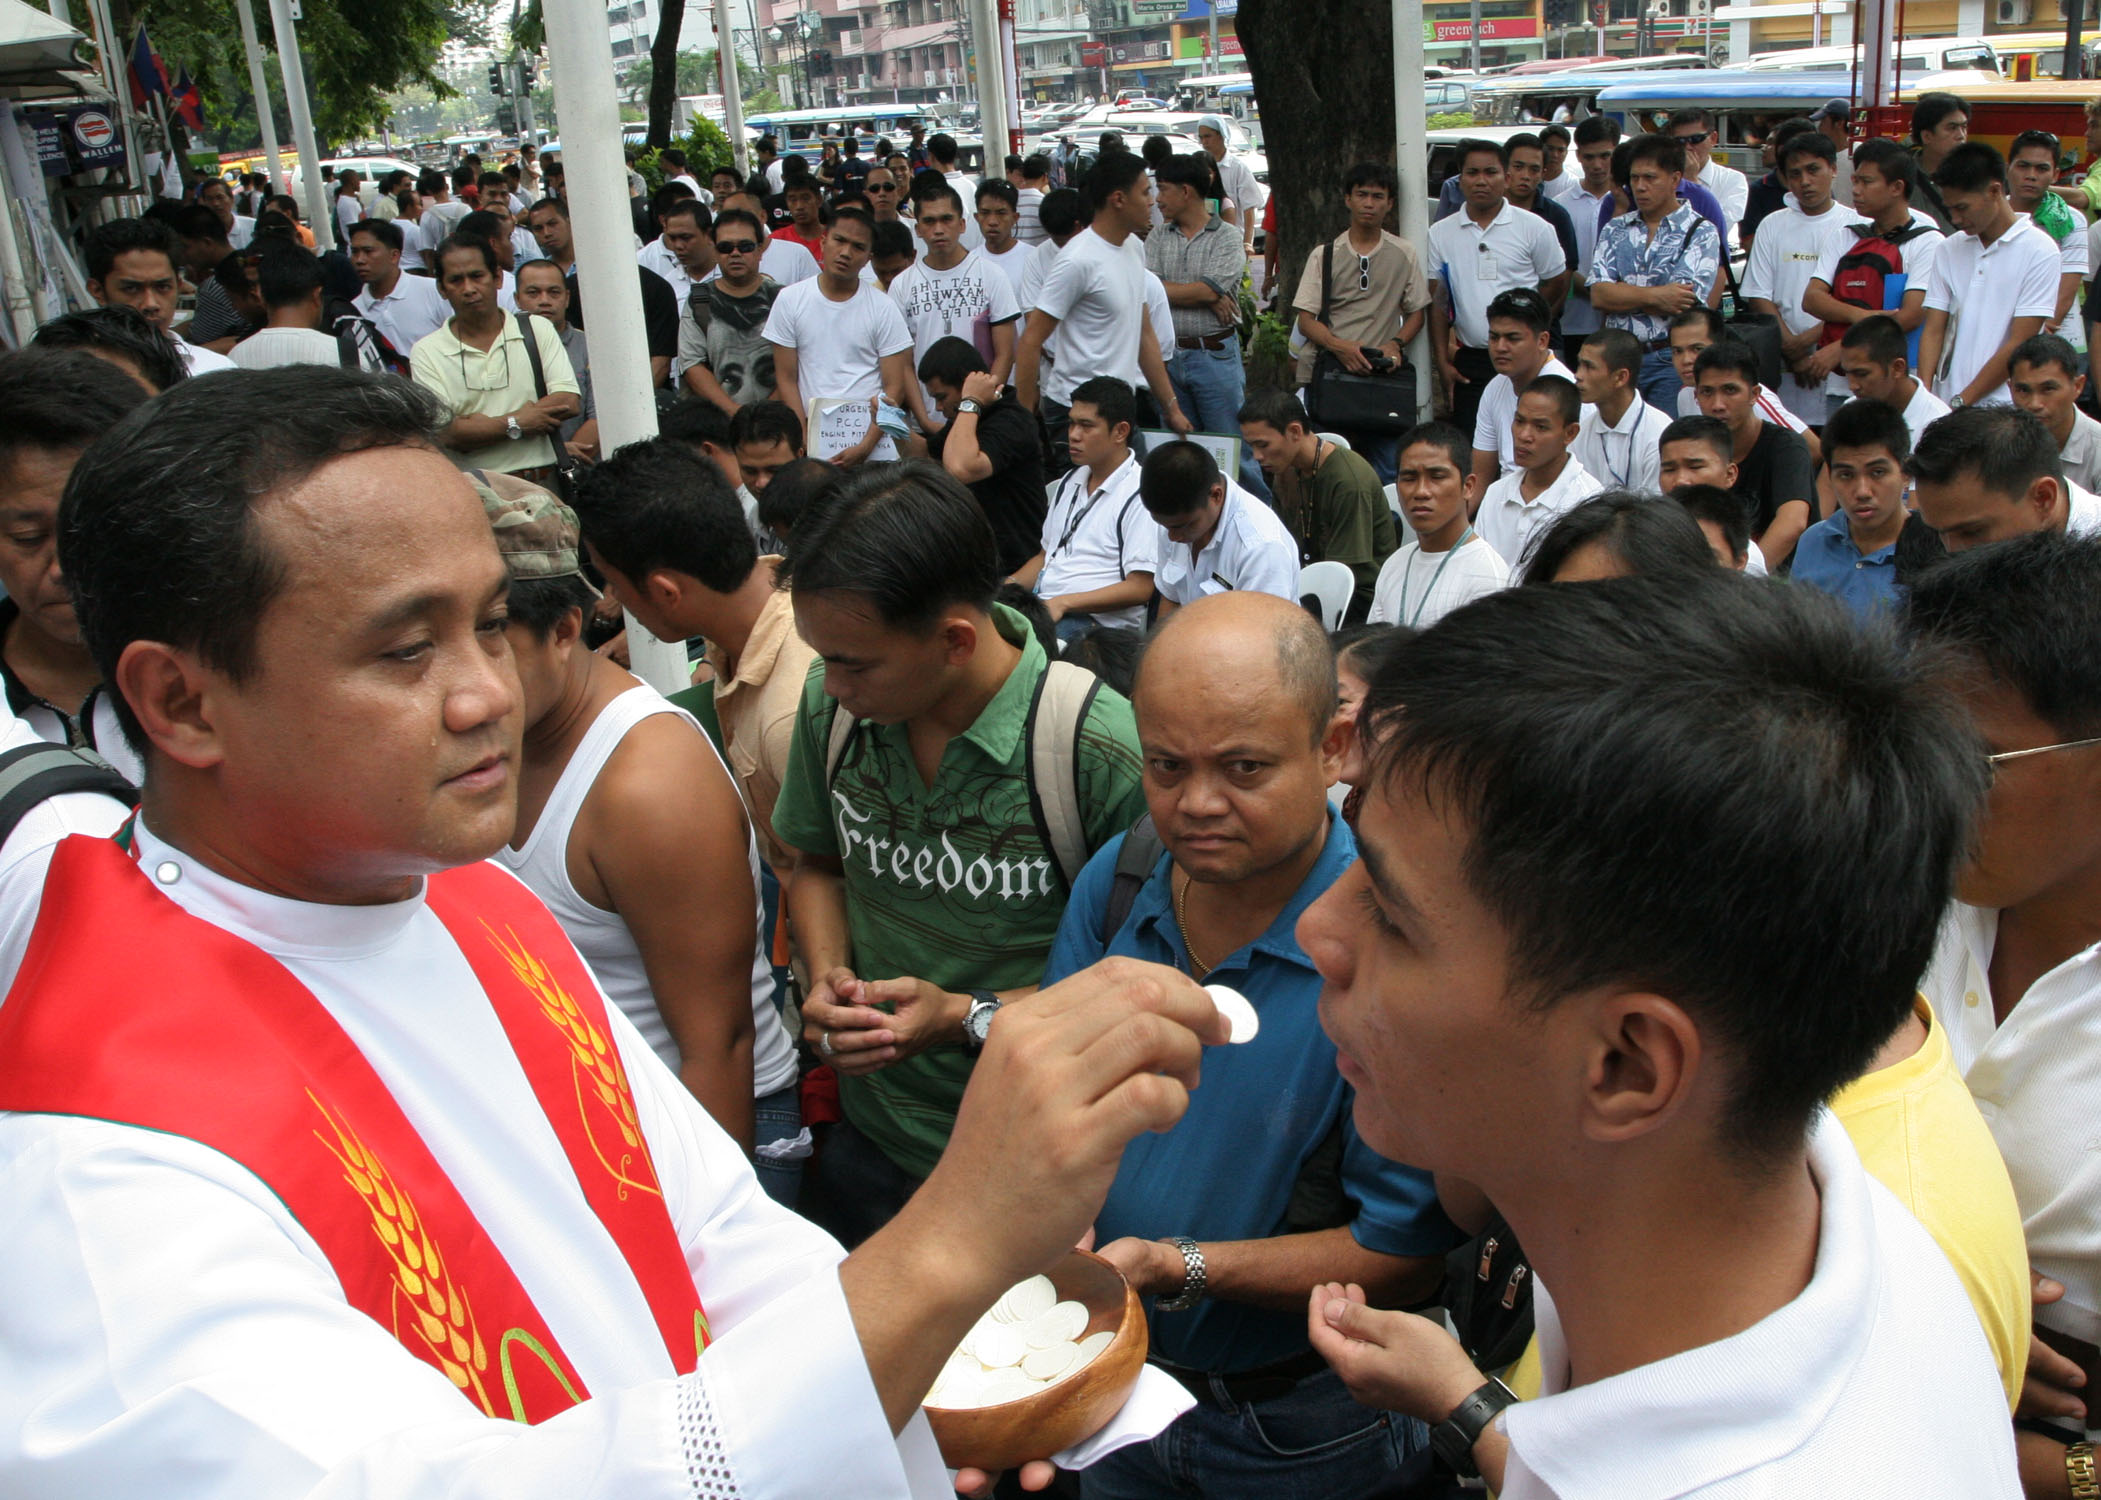 A Catholic priest gives holy communion to Filipino seafarers during a special mass at a street job fair in Manila October 18, 2008.  The Philippines is the world's fourth biggest source of migrant workers, with over eight million Filipinos employed abroad